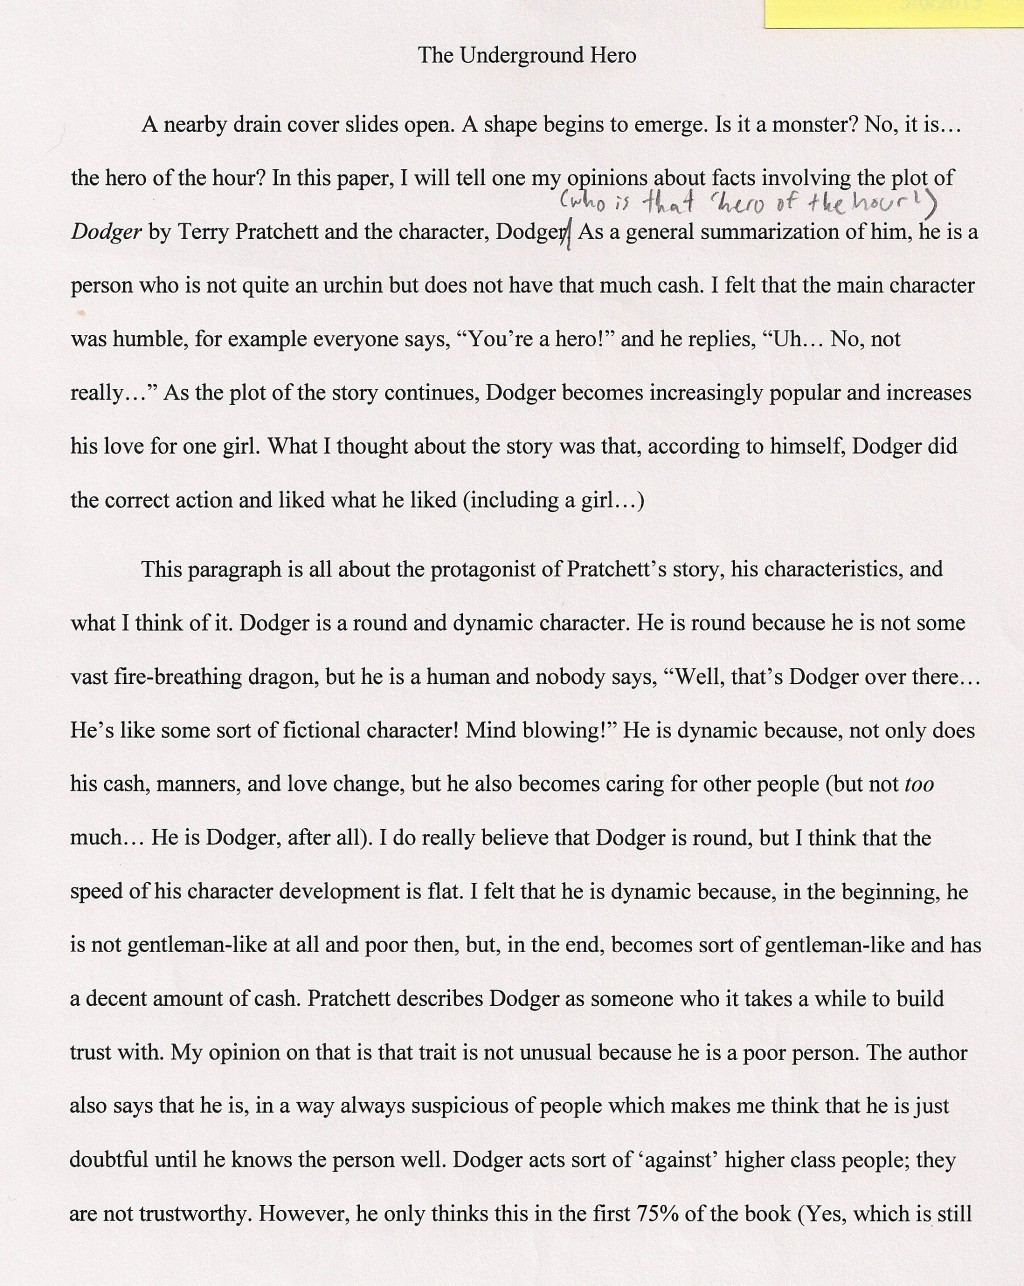 002 The Underground Hero Essay Example Wondrous My In History With Outline Favourite Salman Khan English National Large